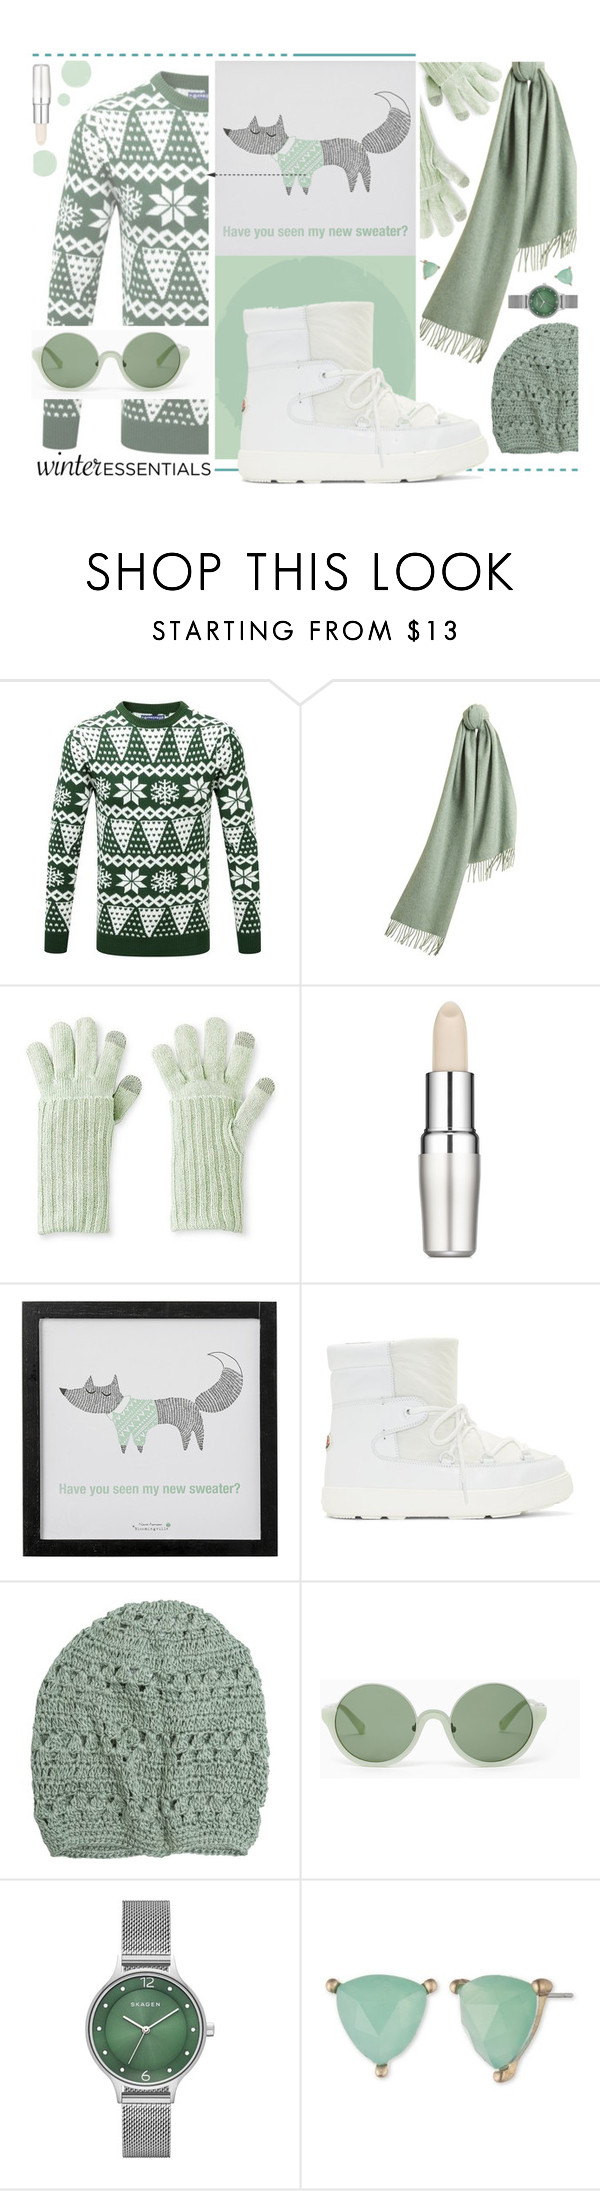 """Mint In Winter."" by s-elle ❤ liked on Polyvore featuring Burberry, Merona, Shiseido, Bloomingville, Moncler, Krochet Kids, 3.1 Phillip Lim, Skagen, Lonna & Lilly and winterstaples"